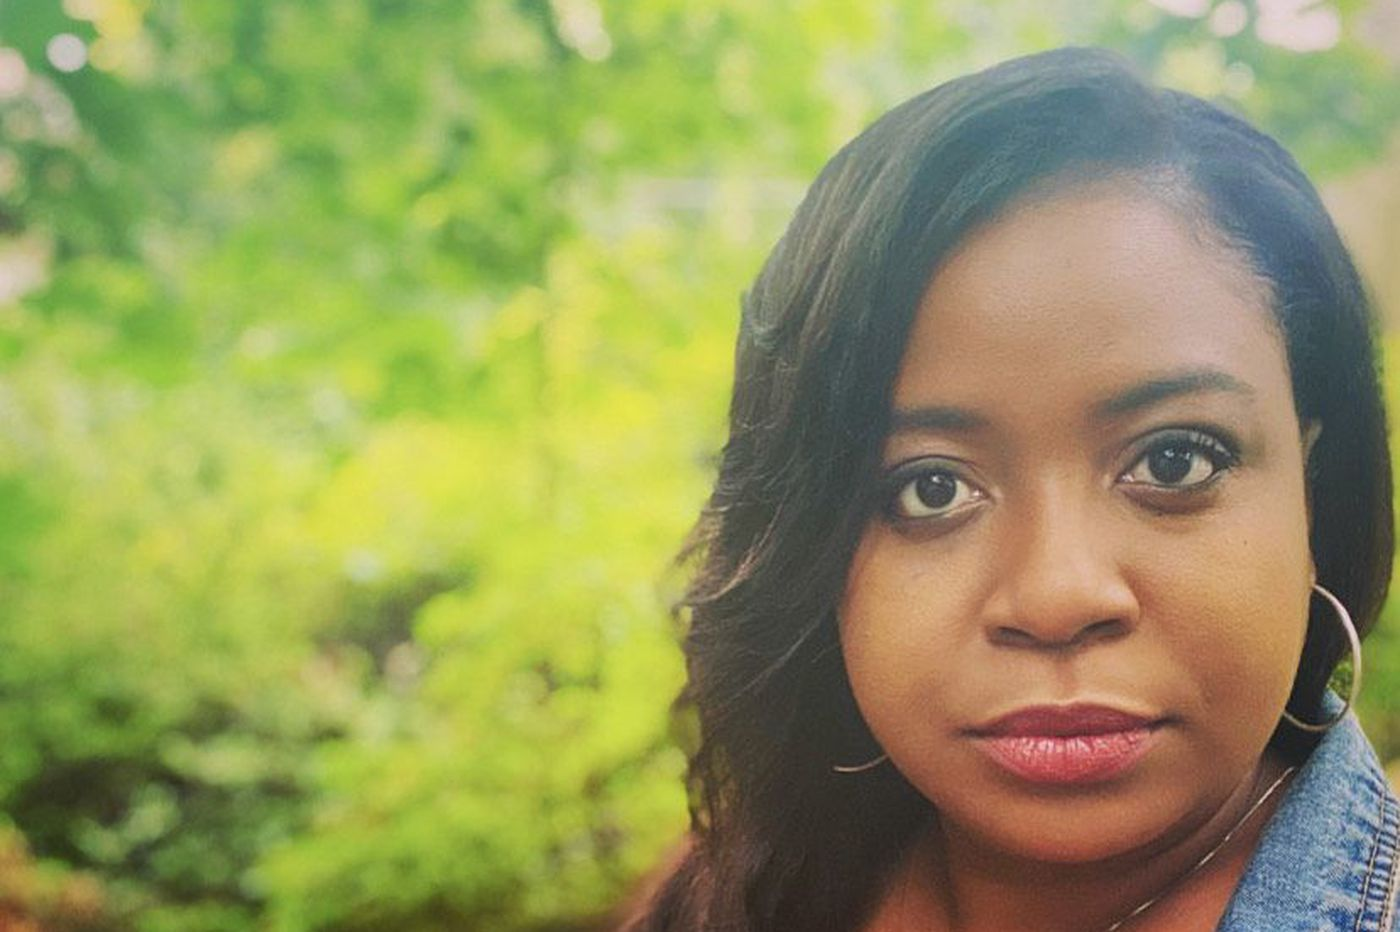 I tried not to be an 'angry Black woman' in the suburbs. But I have reasons to be angry. | Perspective